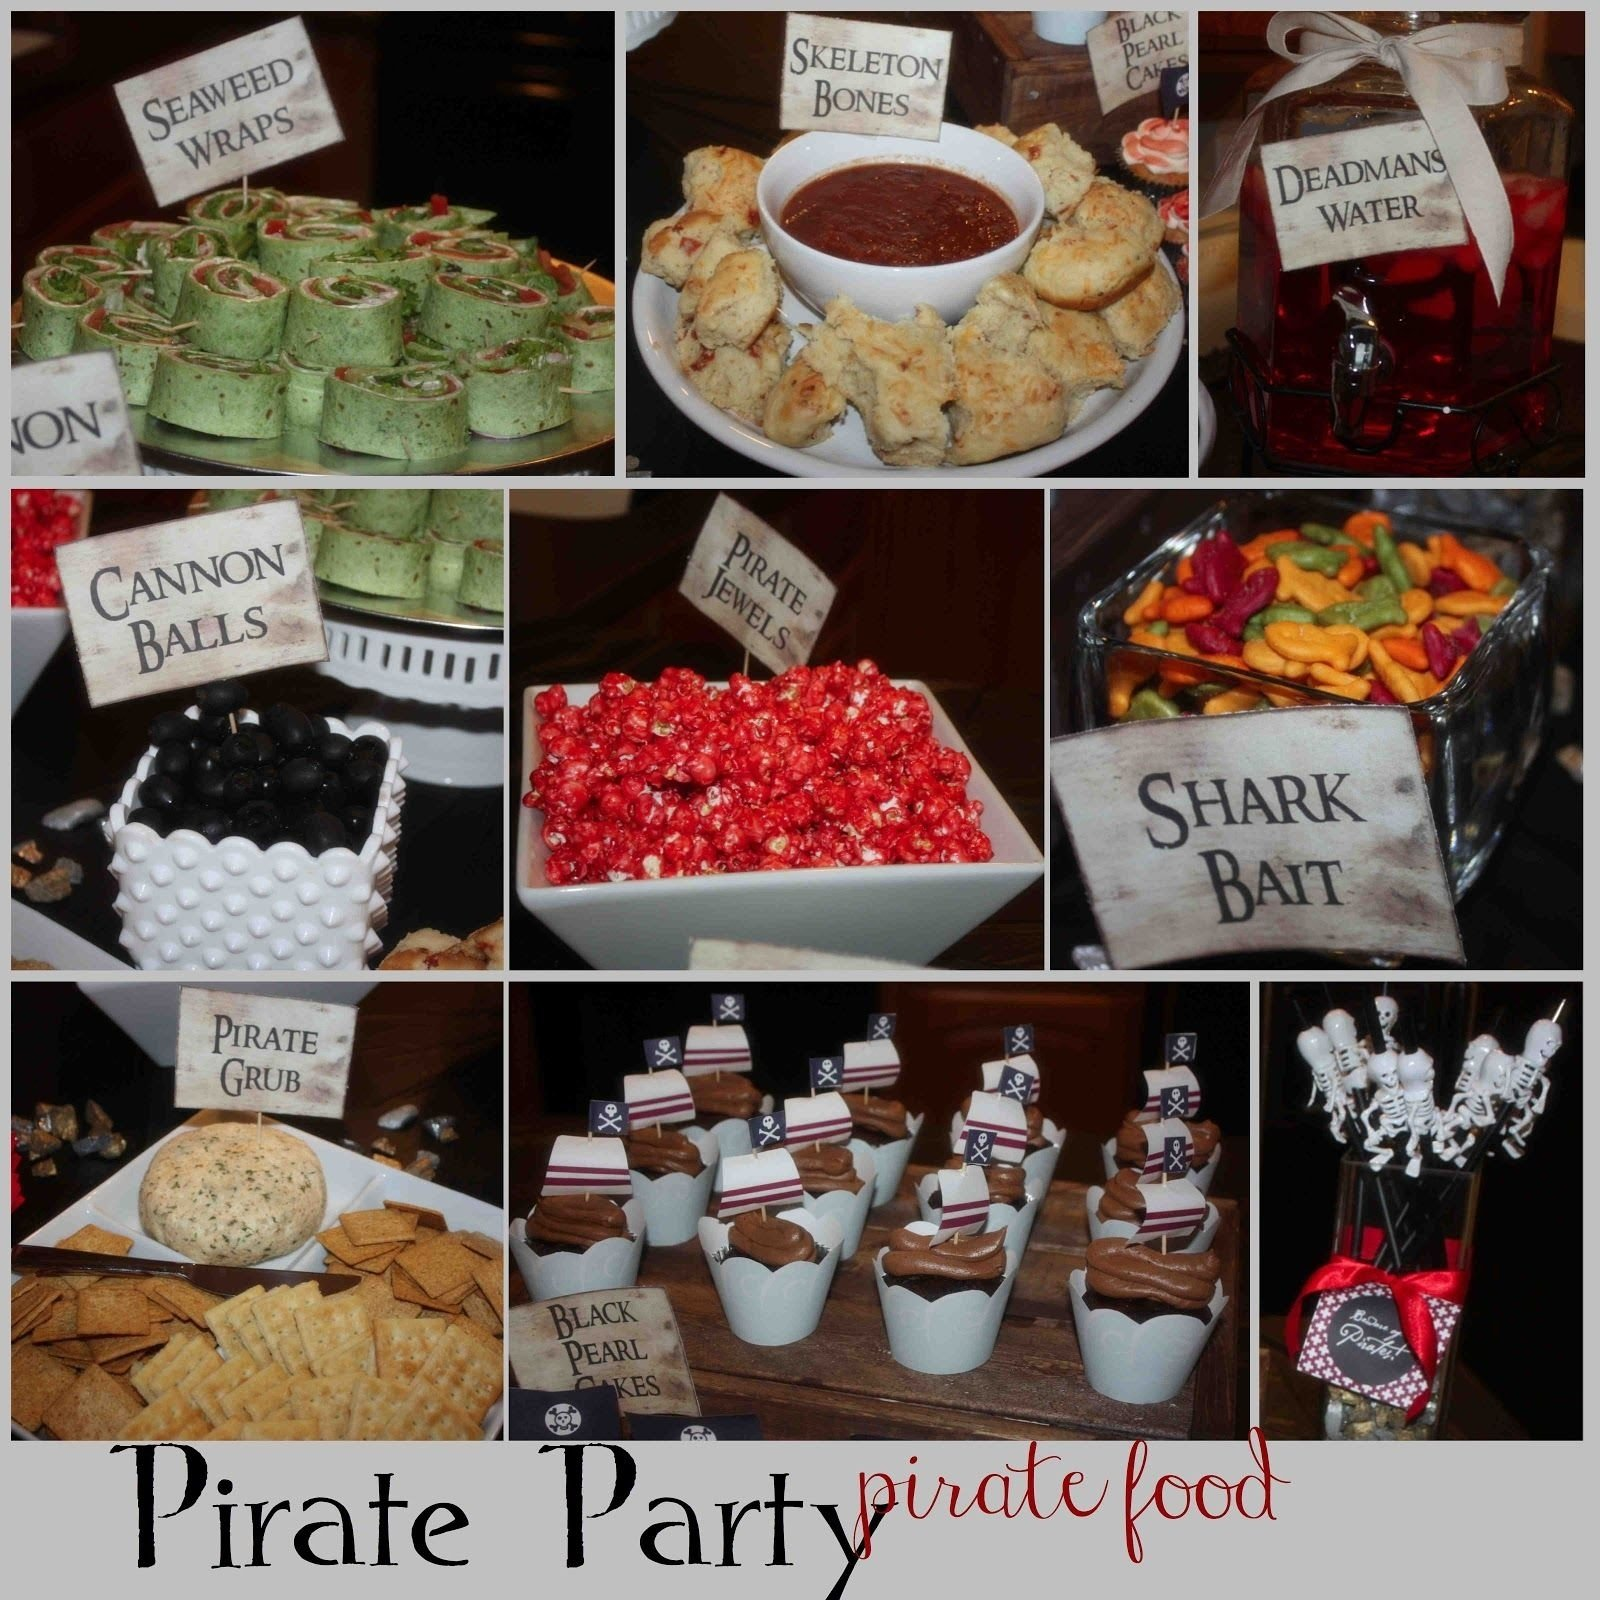 pirate party food ideas | more pirate party ideas, recipes, & fun